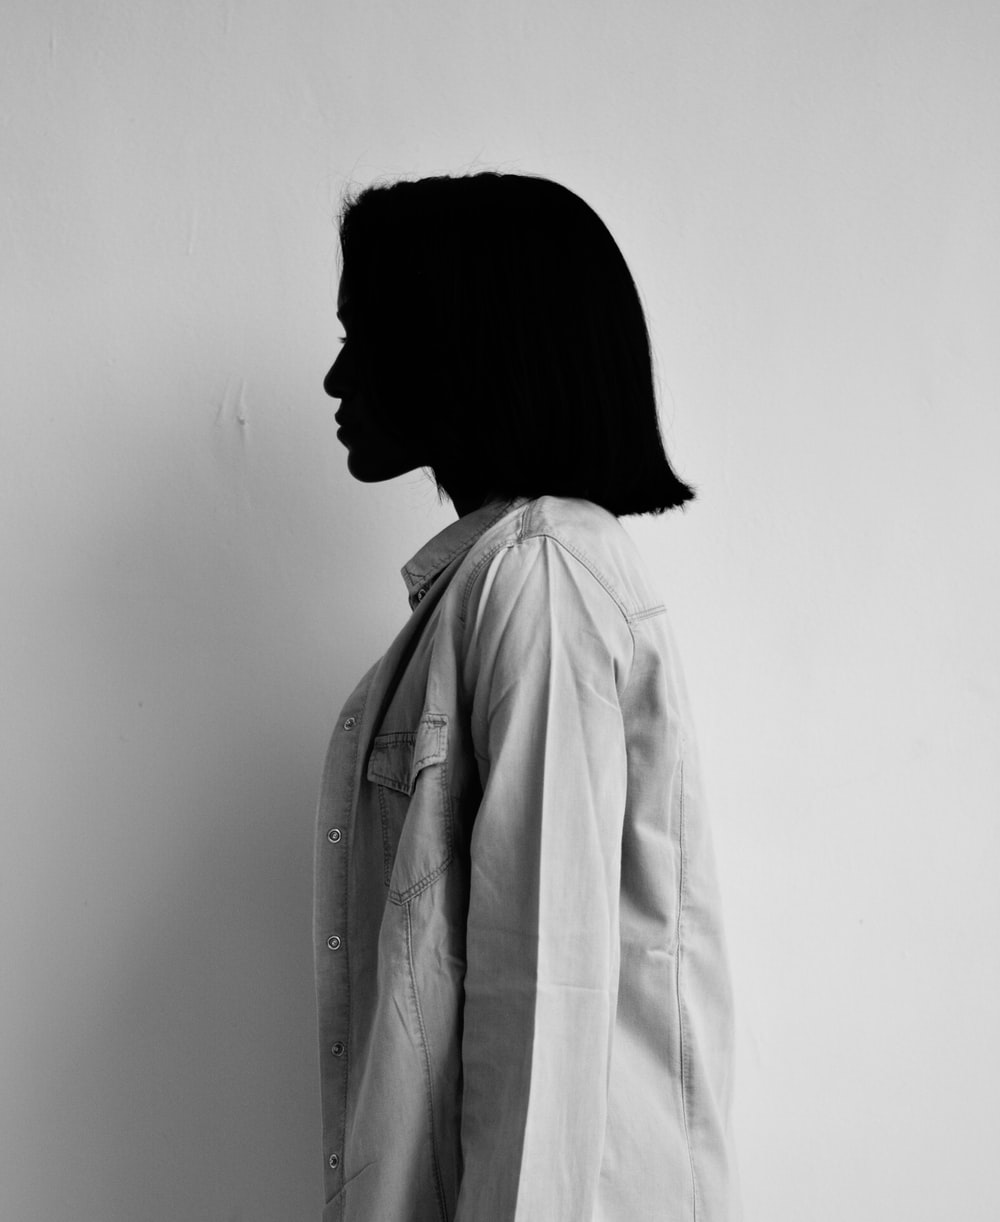 woman in white coat standing